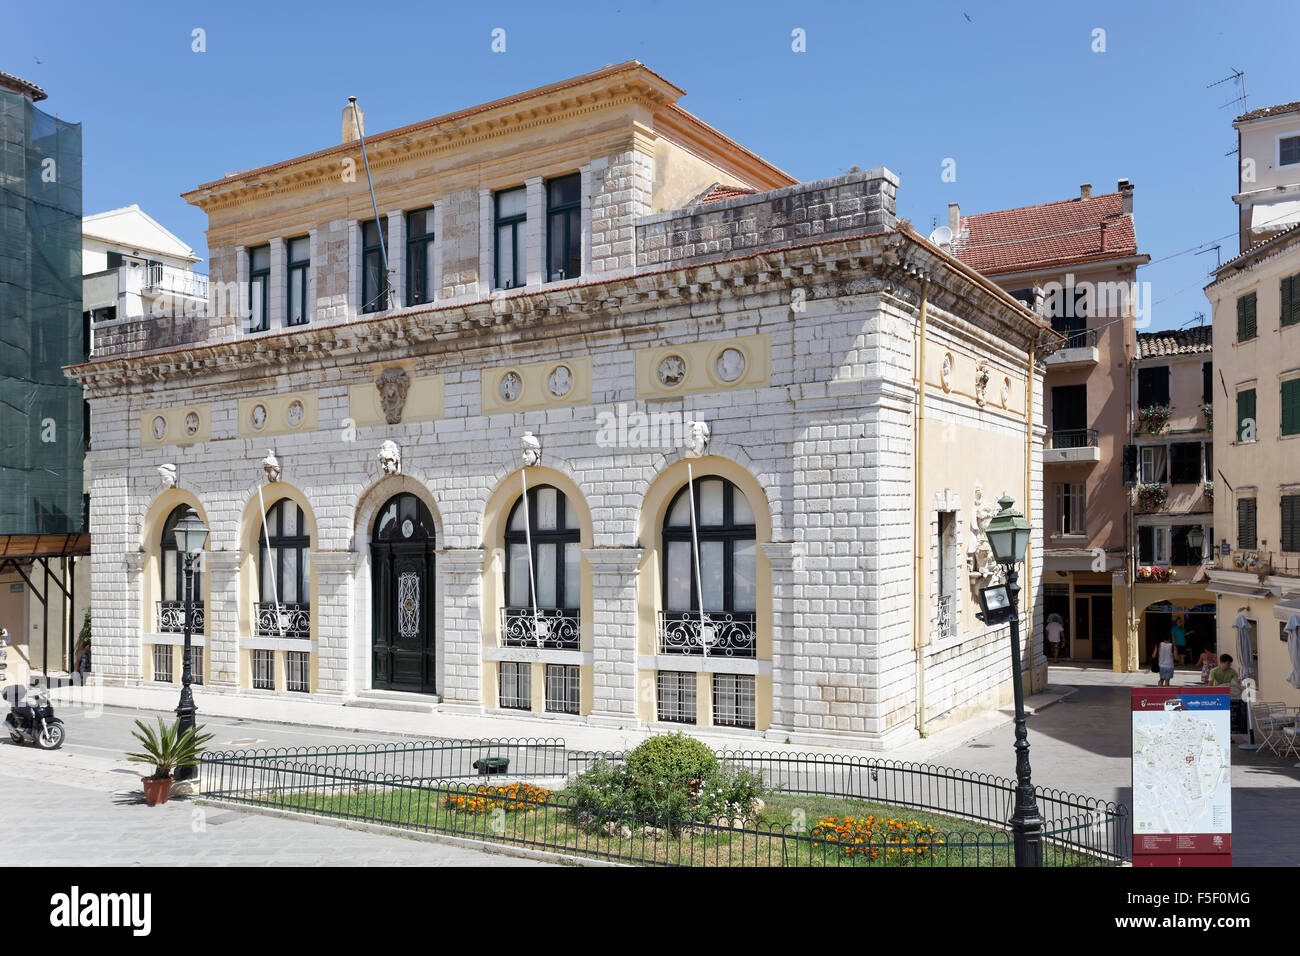 Town hall square with town hall or Dimarcheion, Kerkyra historic centre, Corfu town, Unesco World Heritage Site, - Stock Image